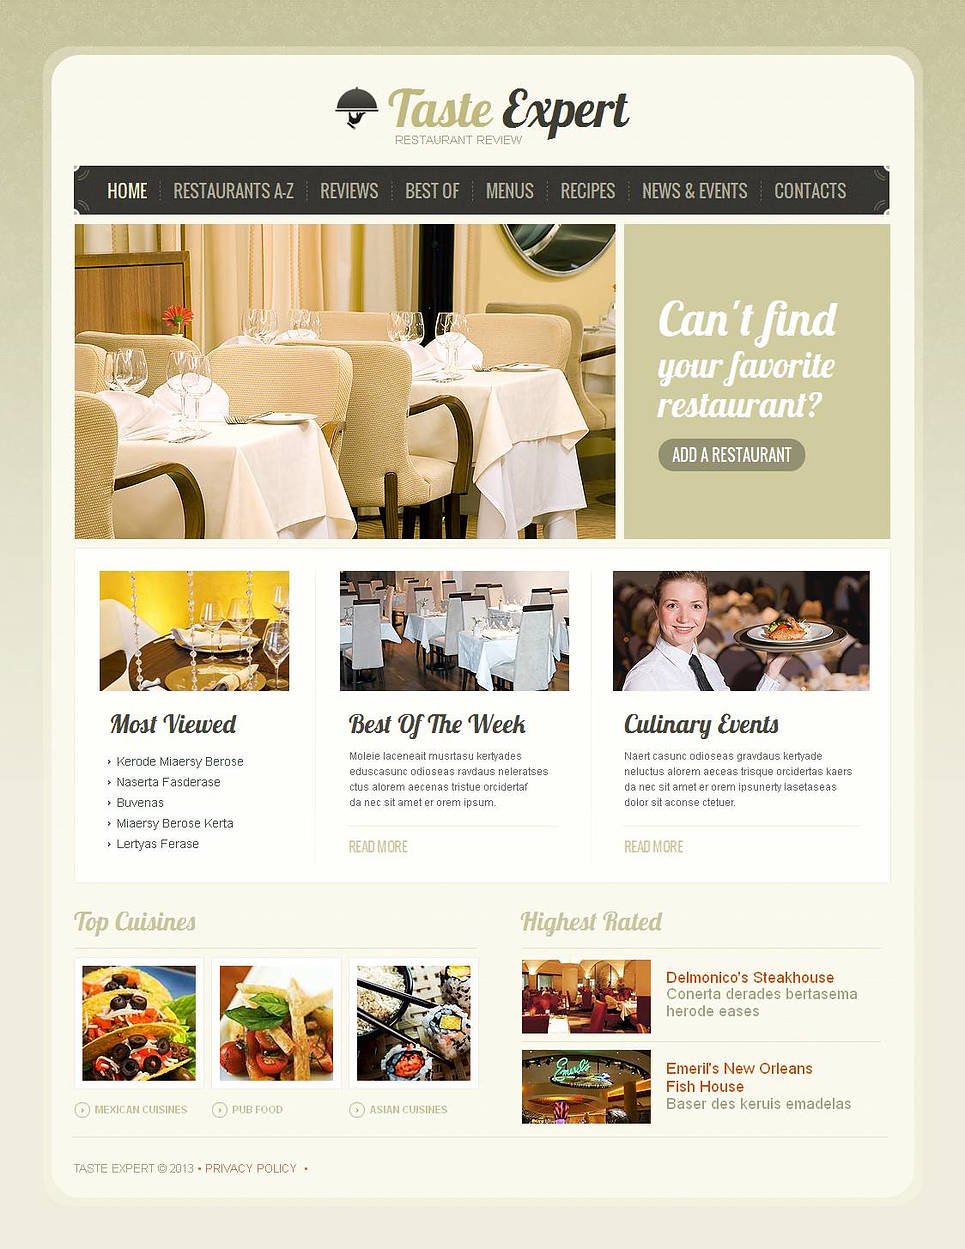 Restaurant Consulting Website Template Done in Neutral Colors - image